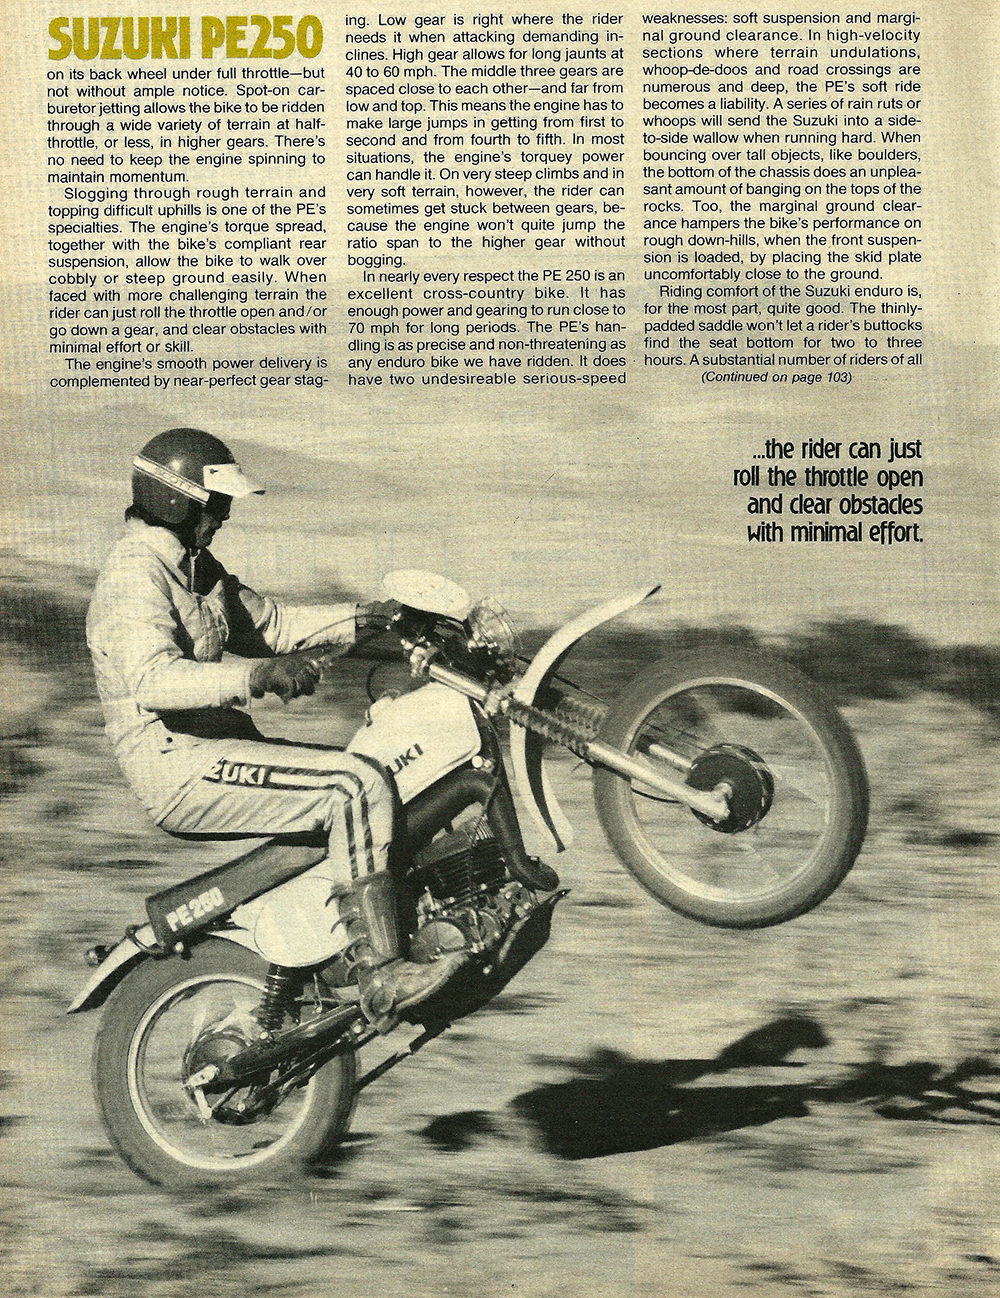 1977 Suzuki PE250 road test 5.jpg